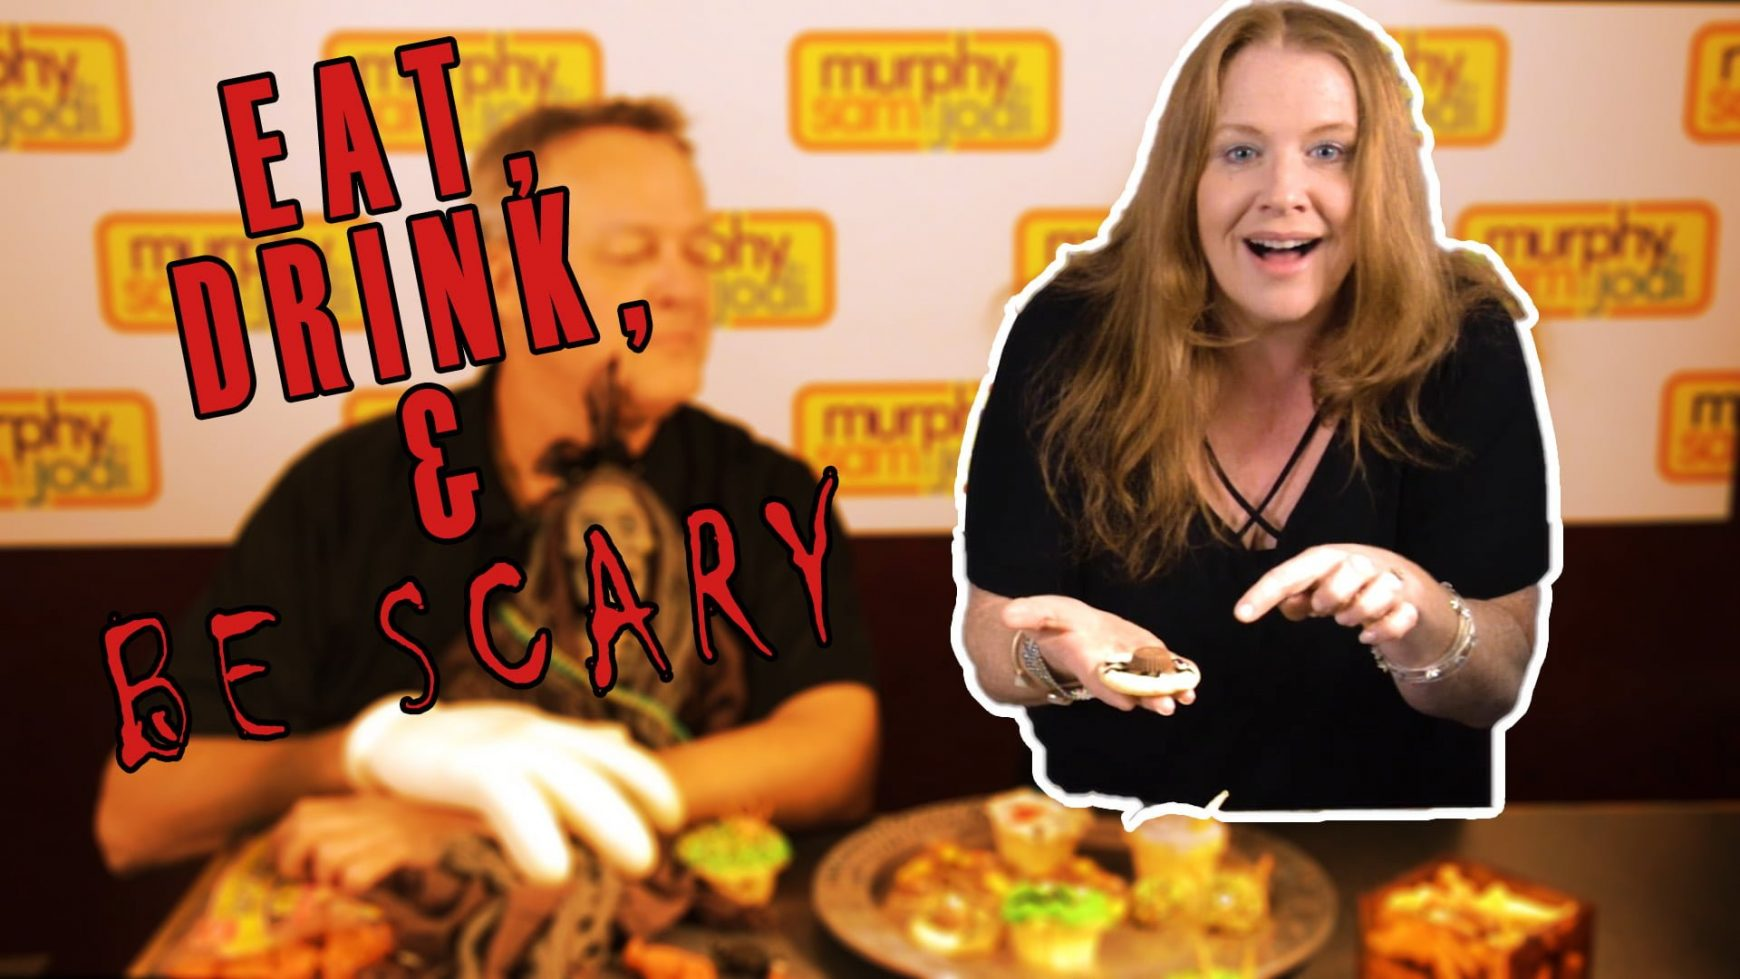 WATCH: Eat, Drink, and Be Scary